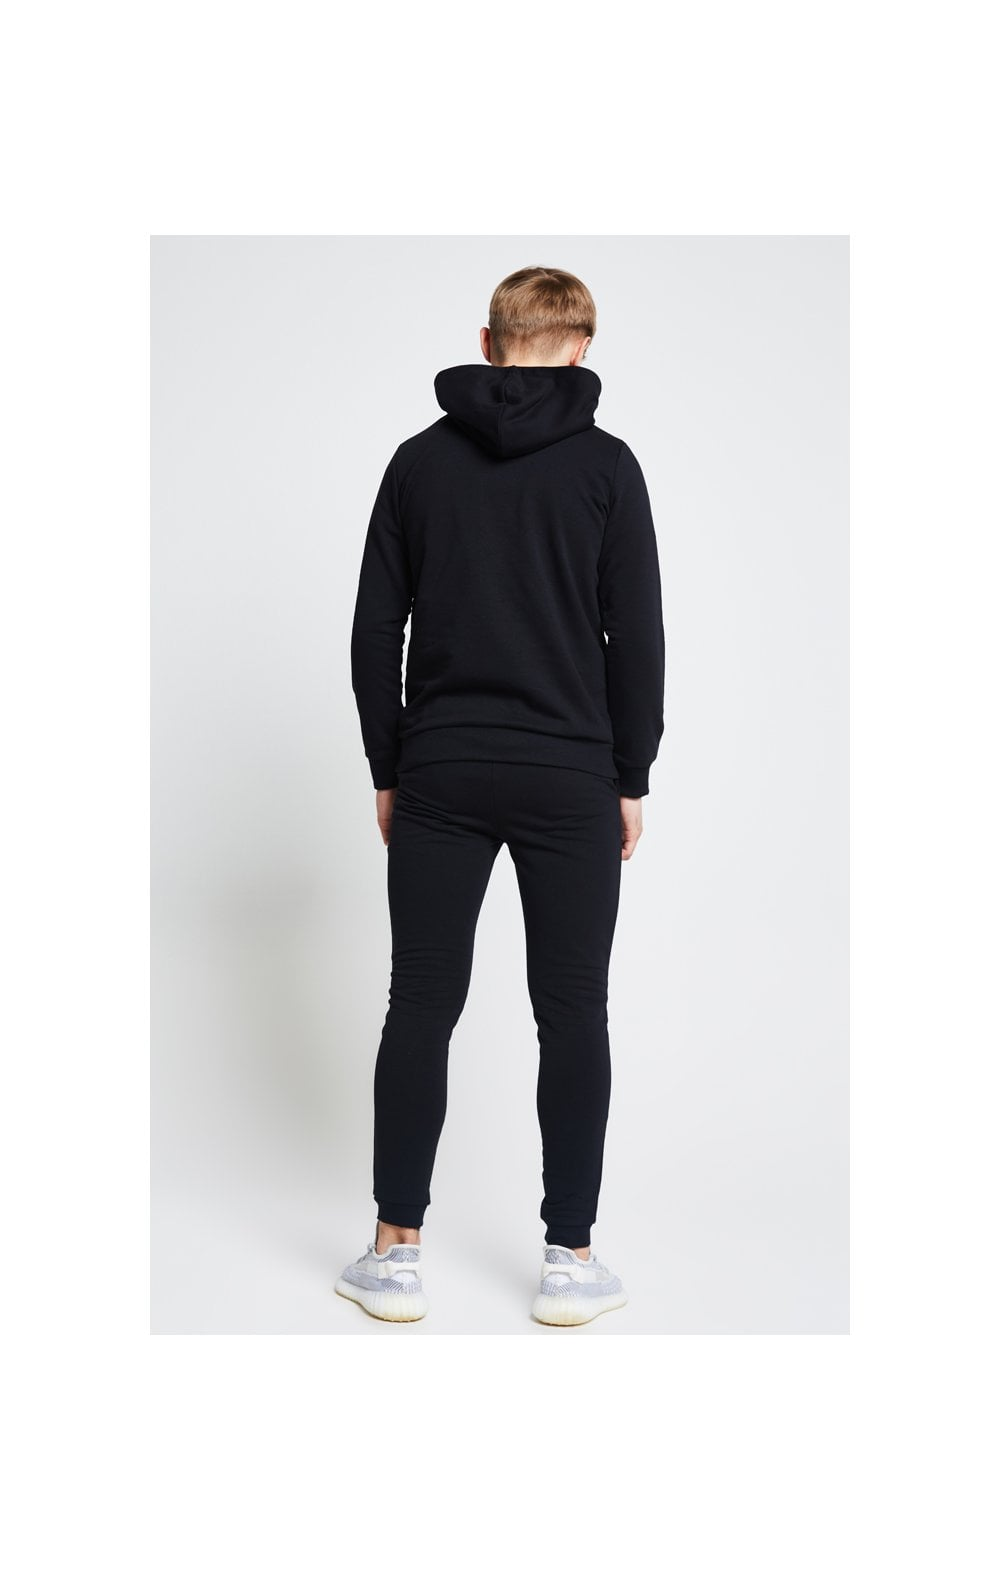 Illusive London Overhead Hoodie - Black (5)